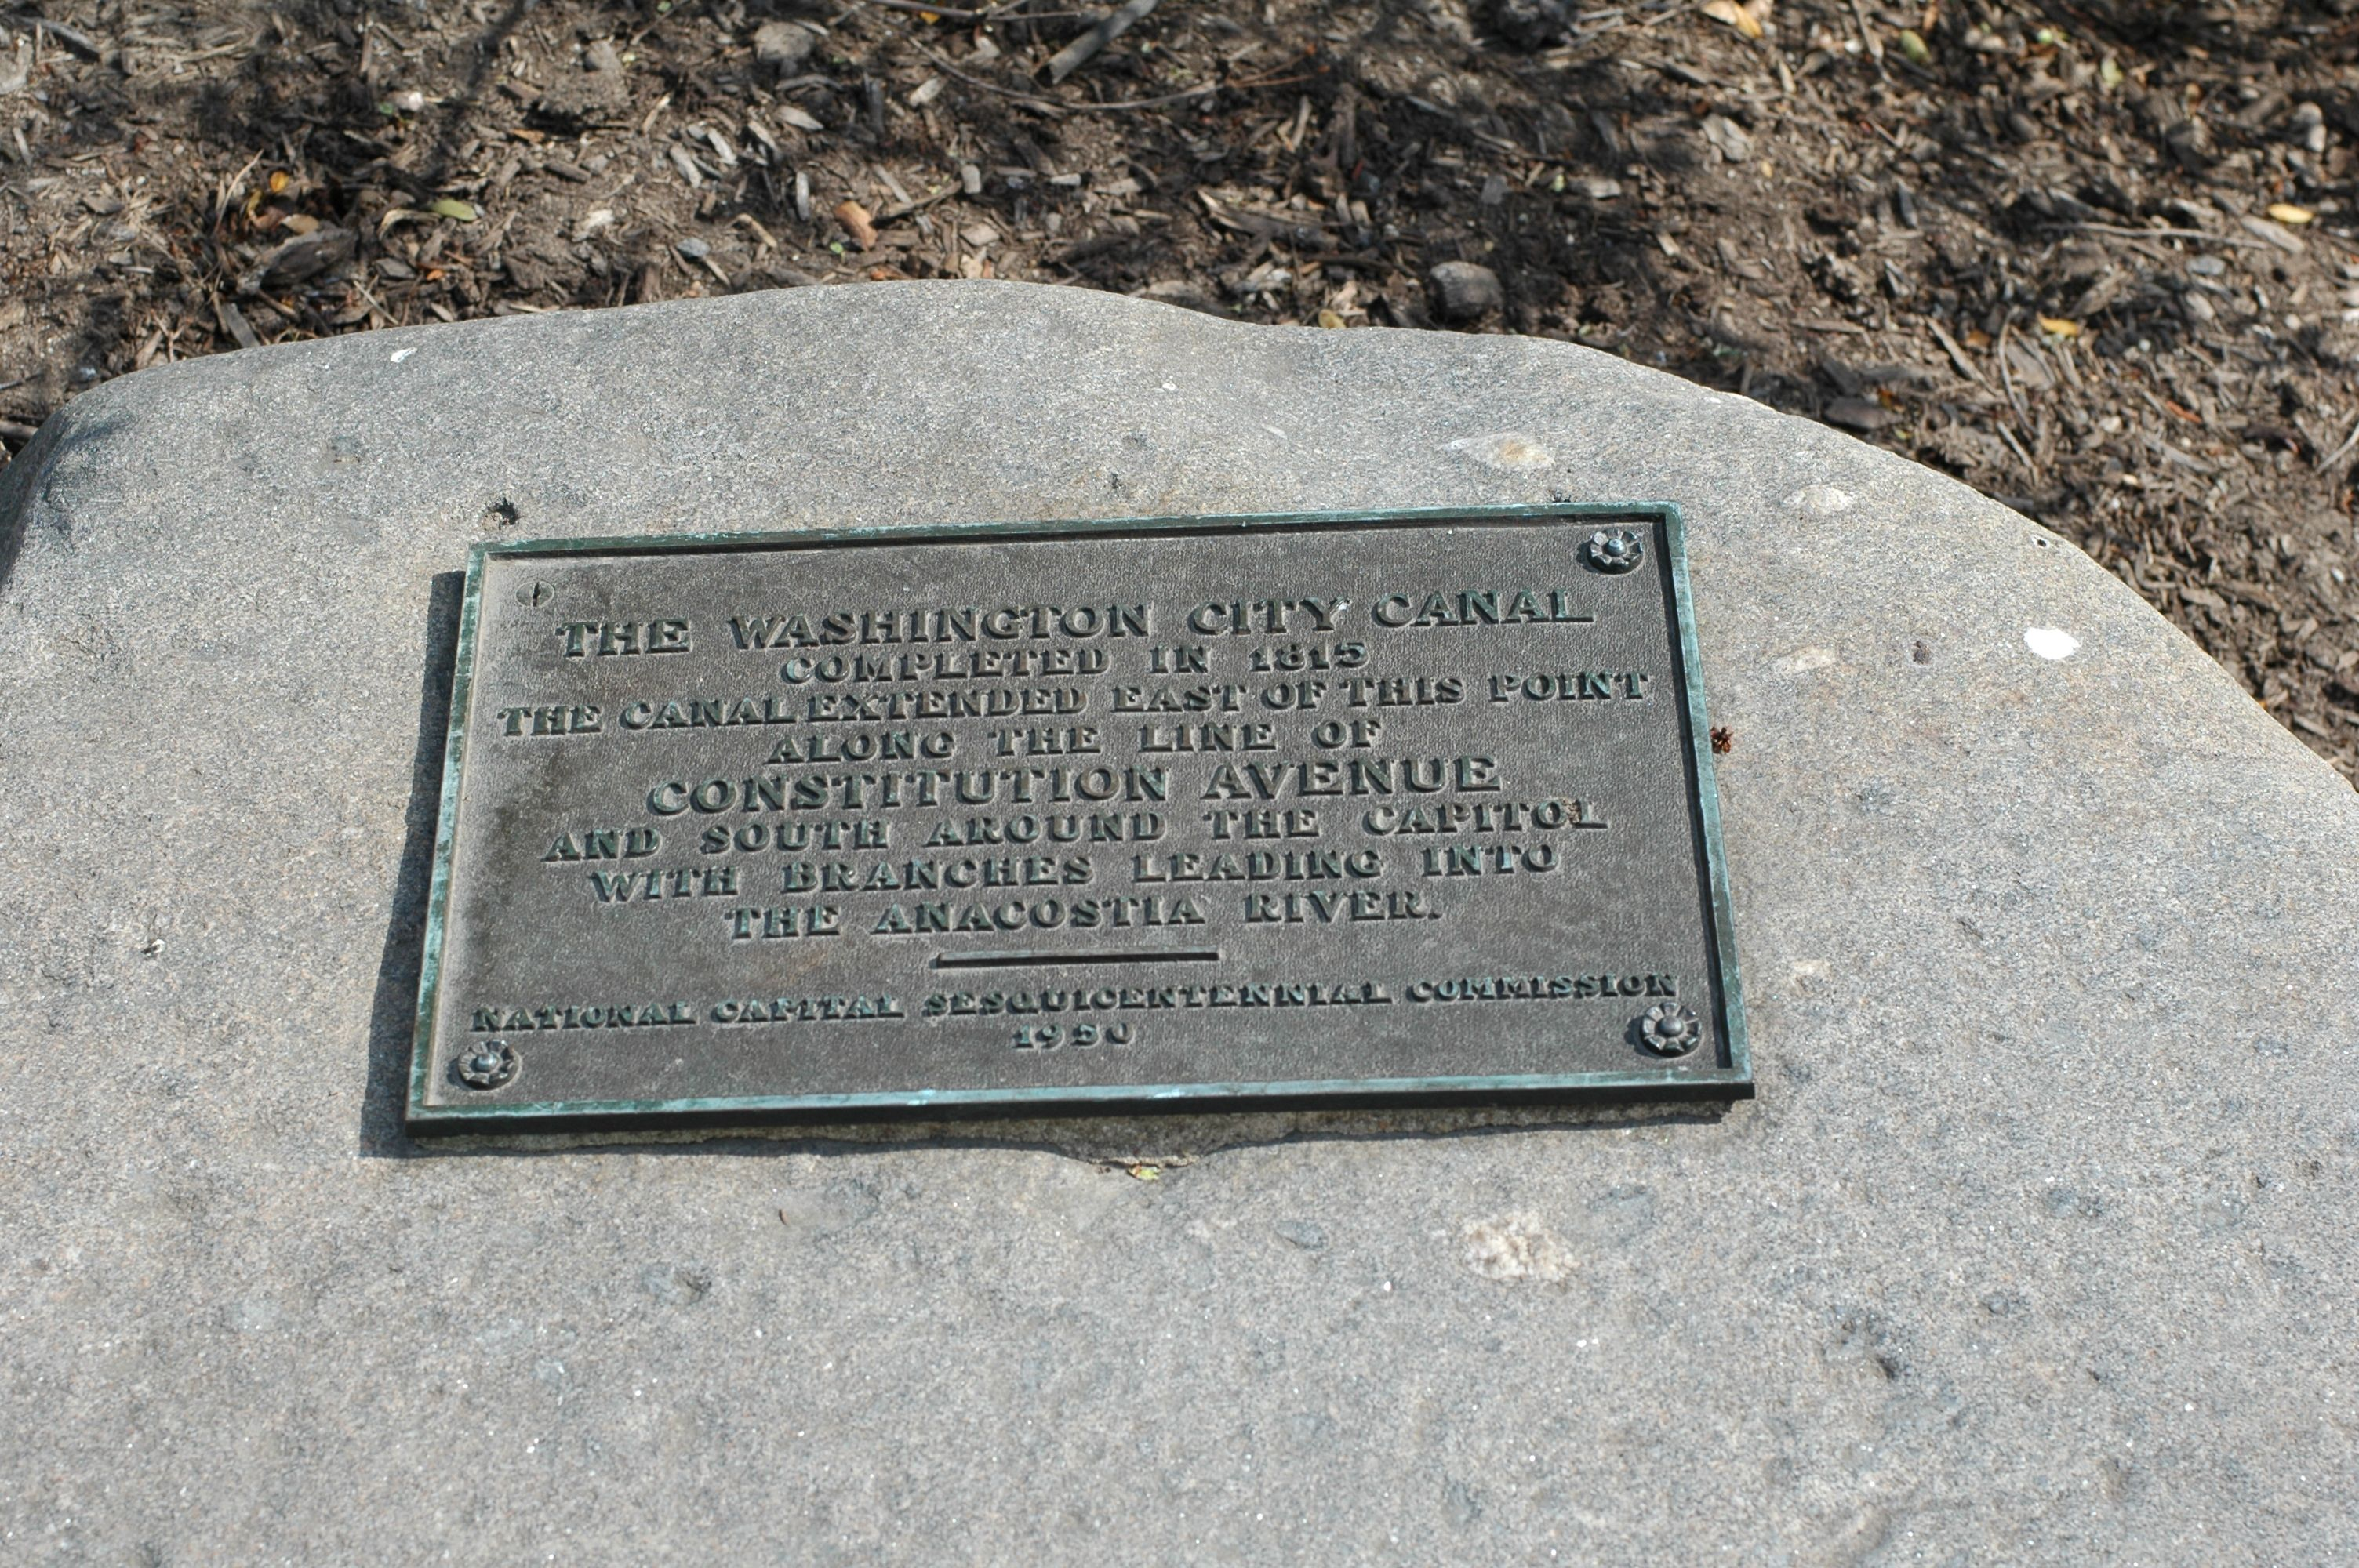 The Washington City Canal Marker